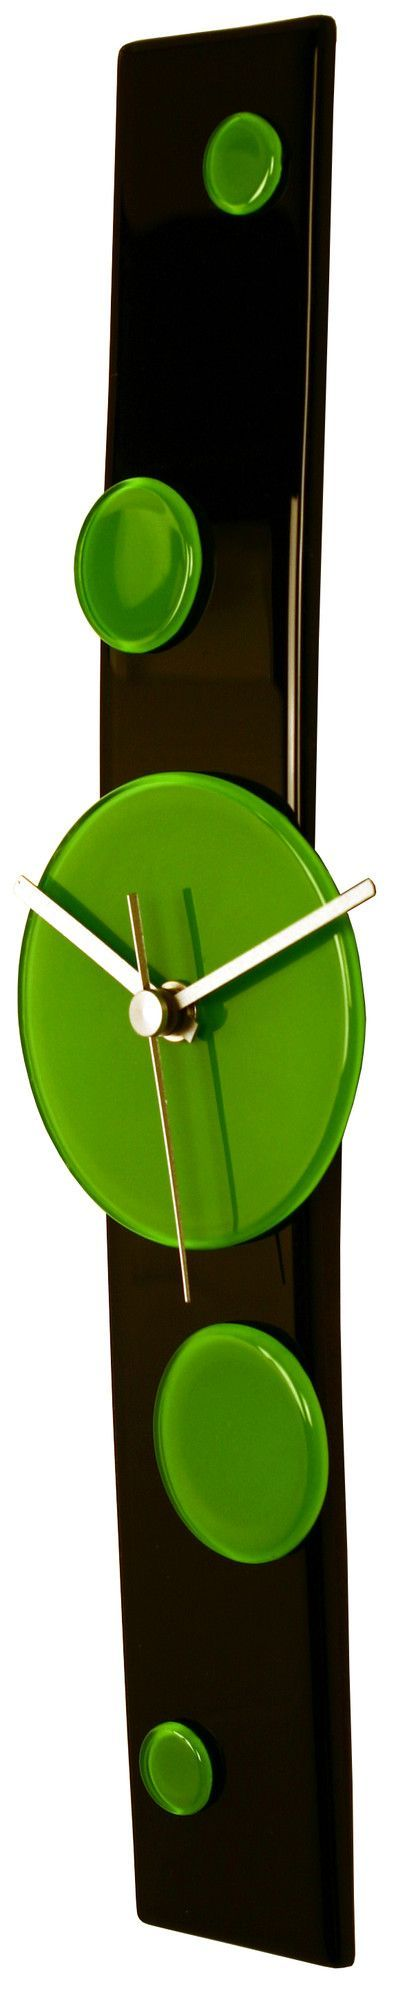 Curved Glass Clock with Dots